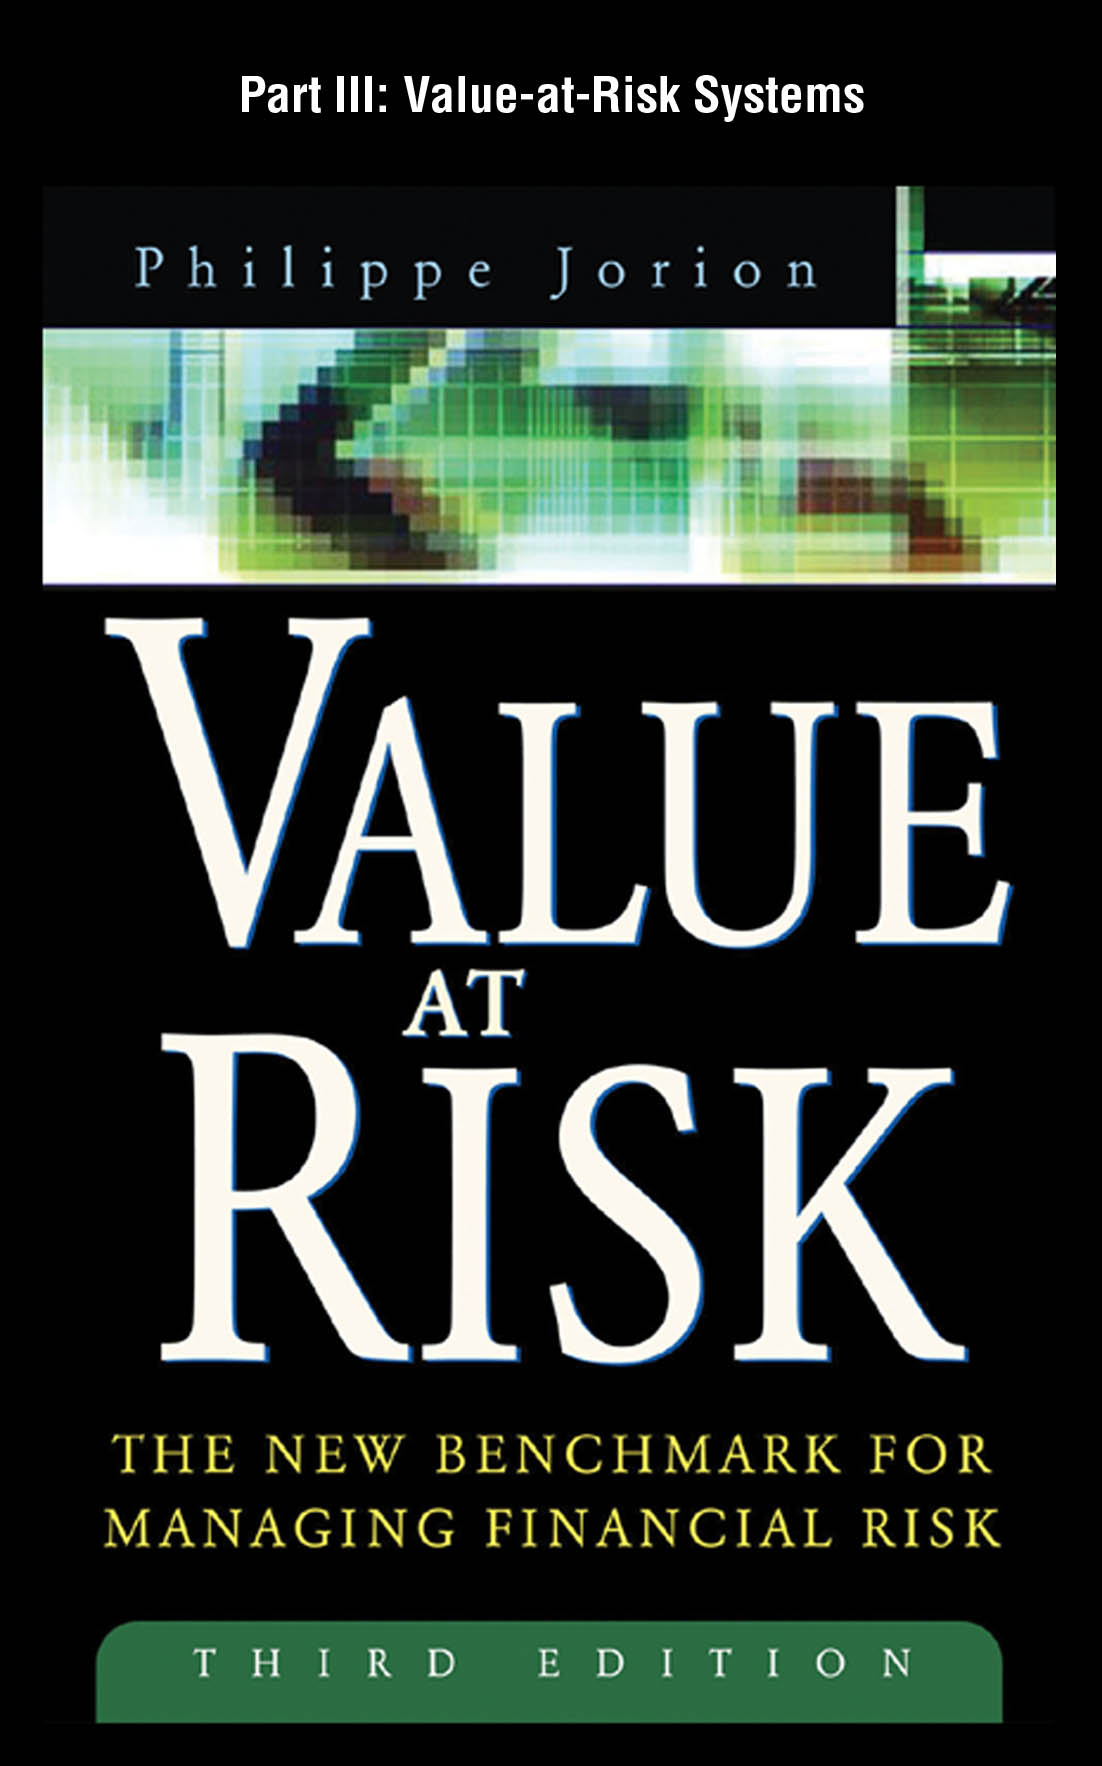 Value at Risk, 3rd Ed., Part III - Value-at-Risk Systems